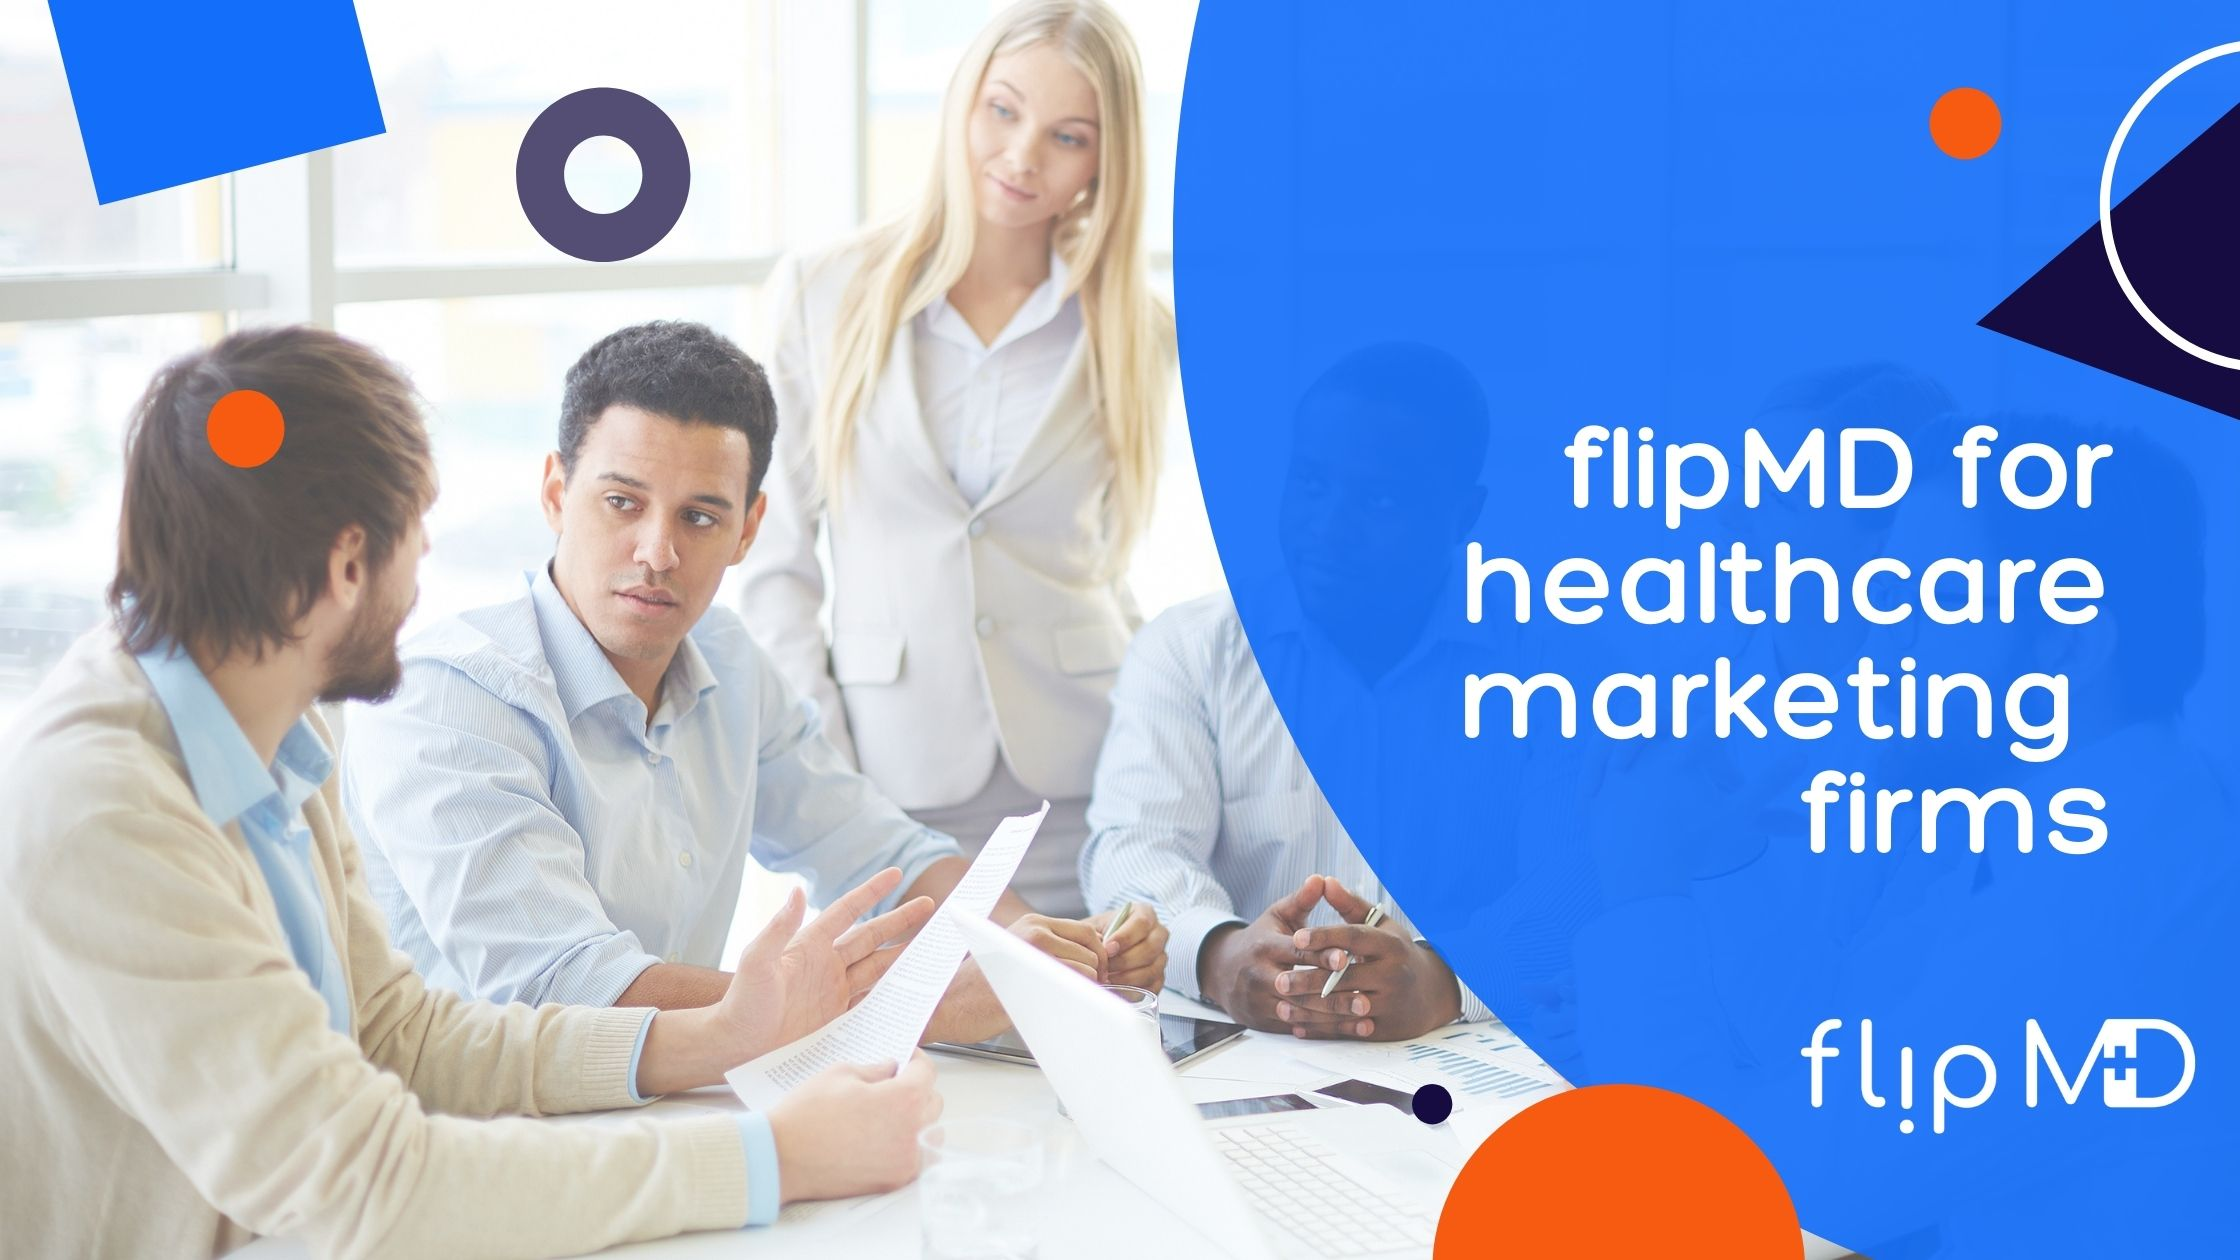 healthcare marketing firm meeting to discuss flipmd project